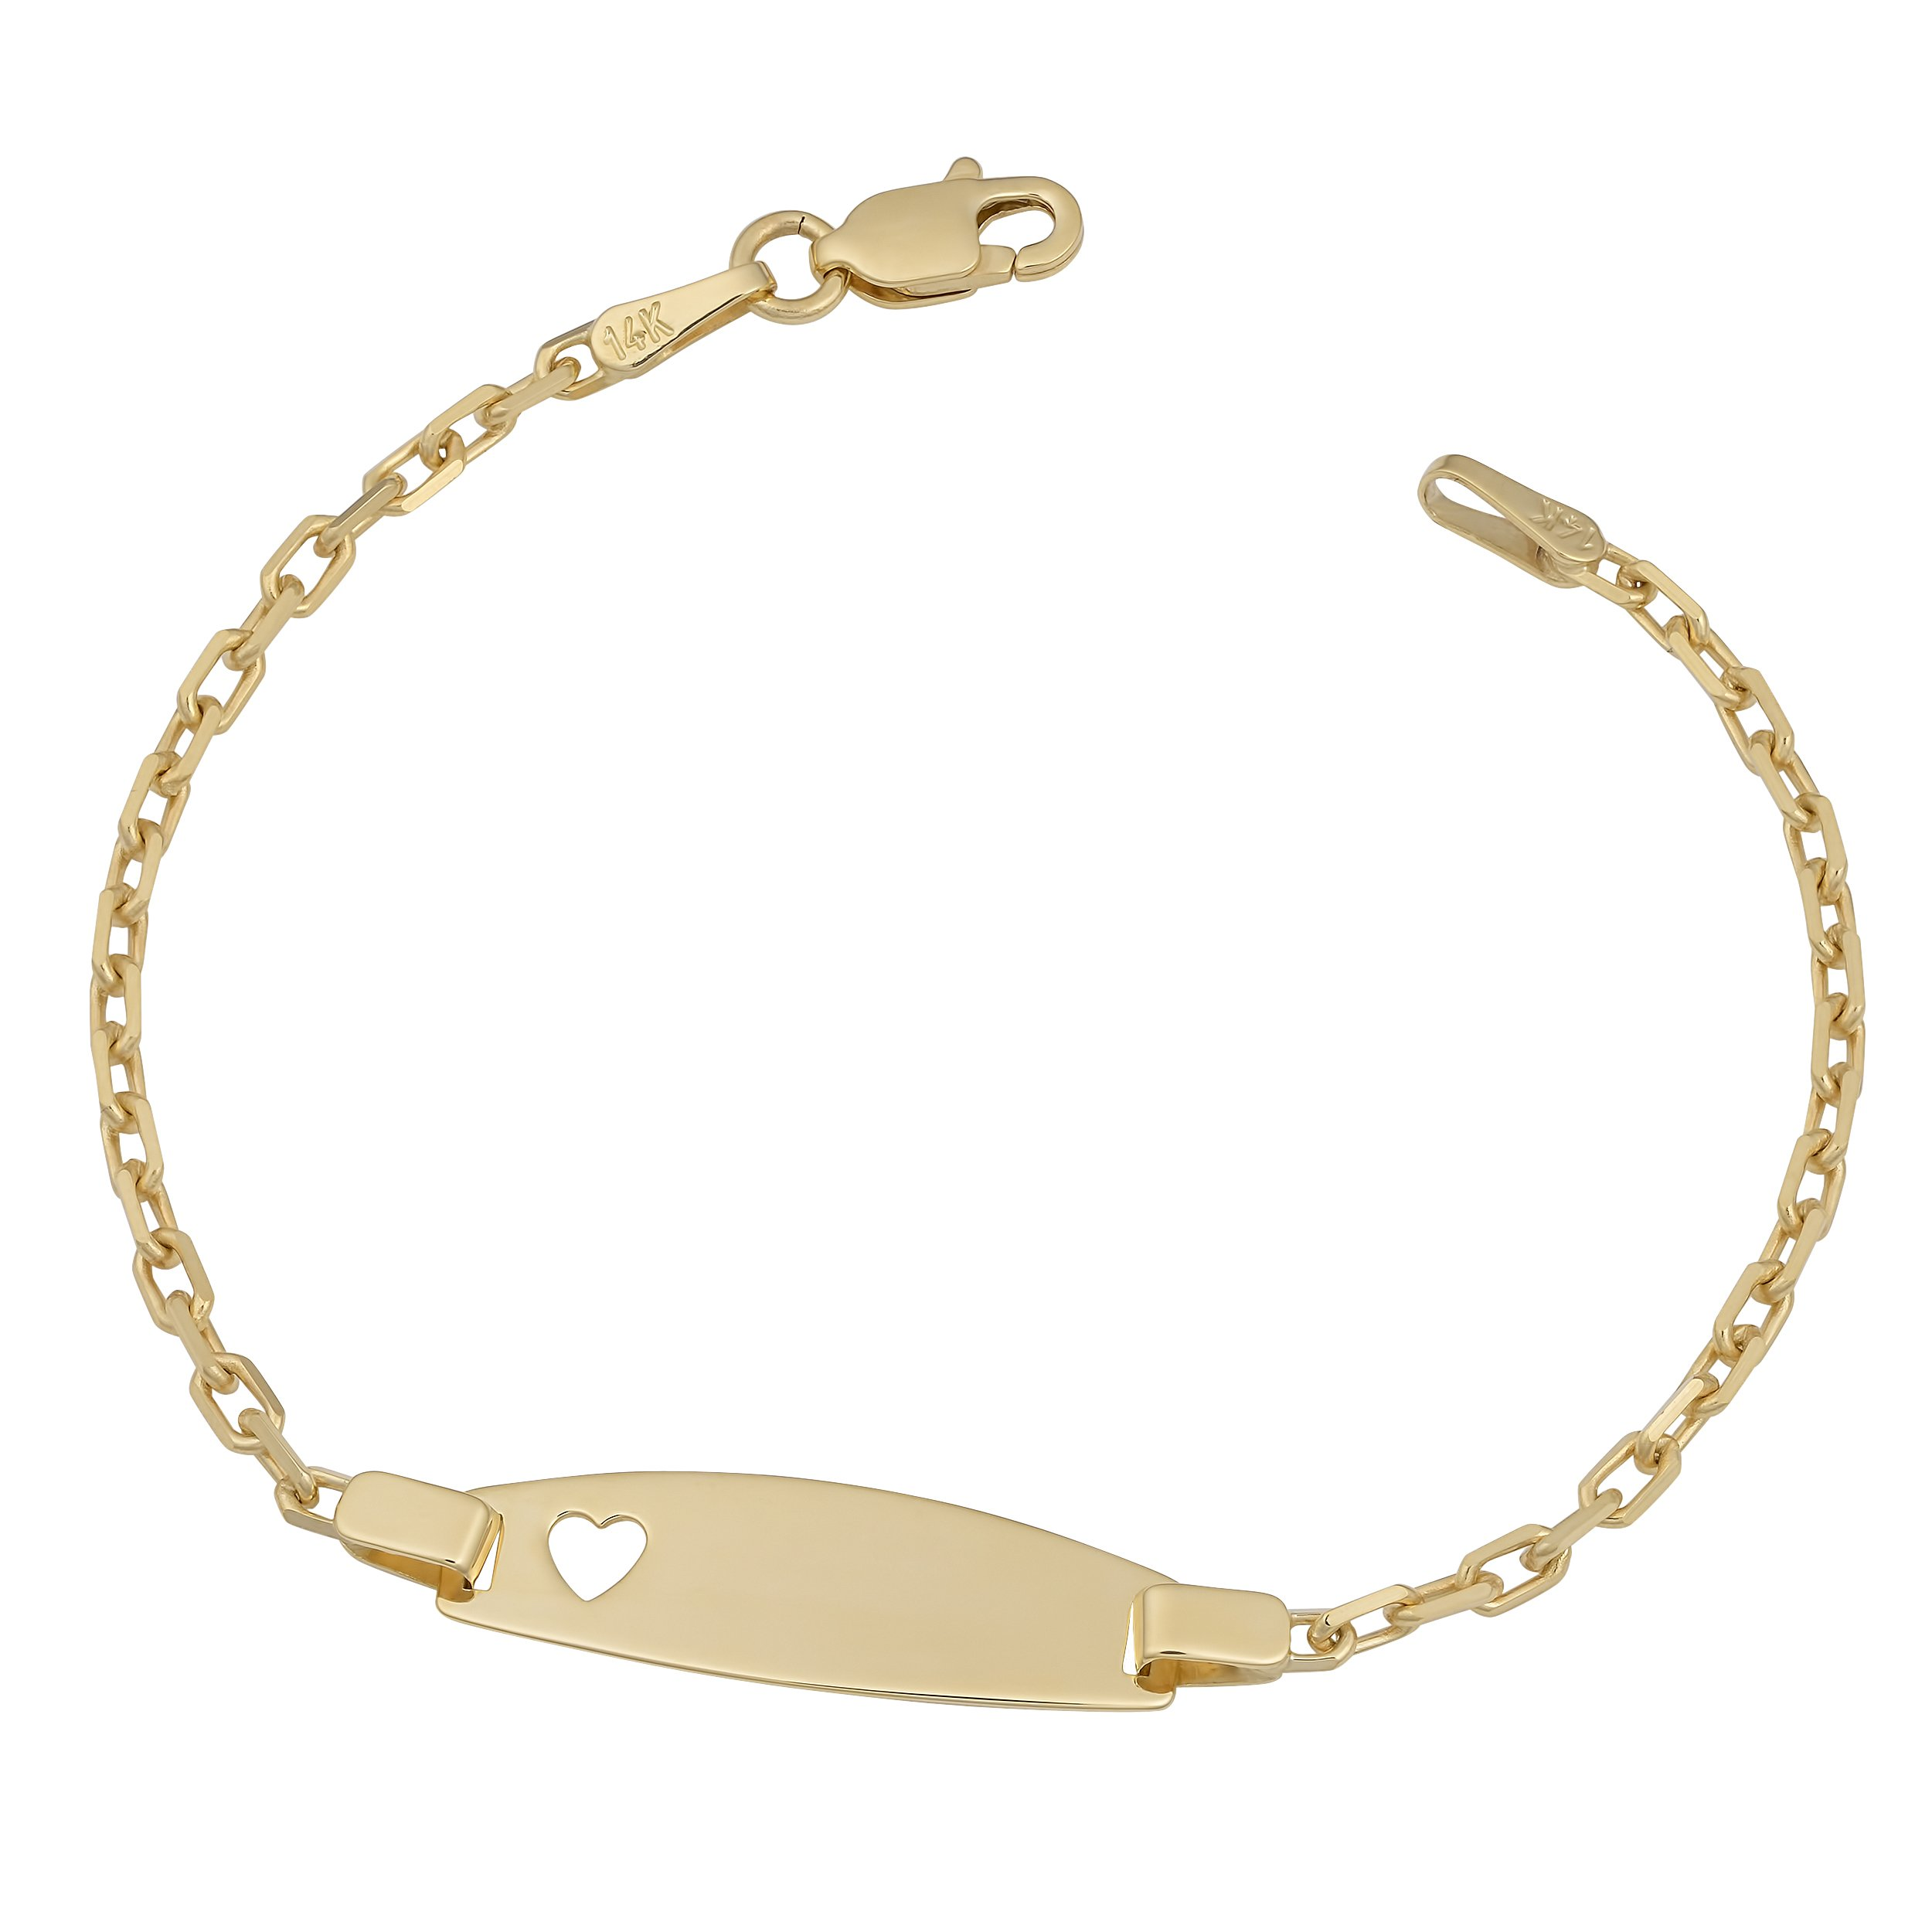 14k Yellow Gold Cable Link Baby Id With Heart Bracelet (5.5 inch) by Kooljewelry